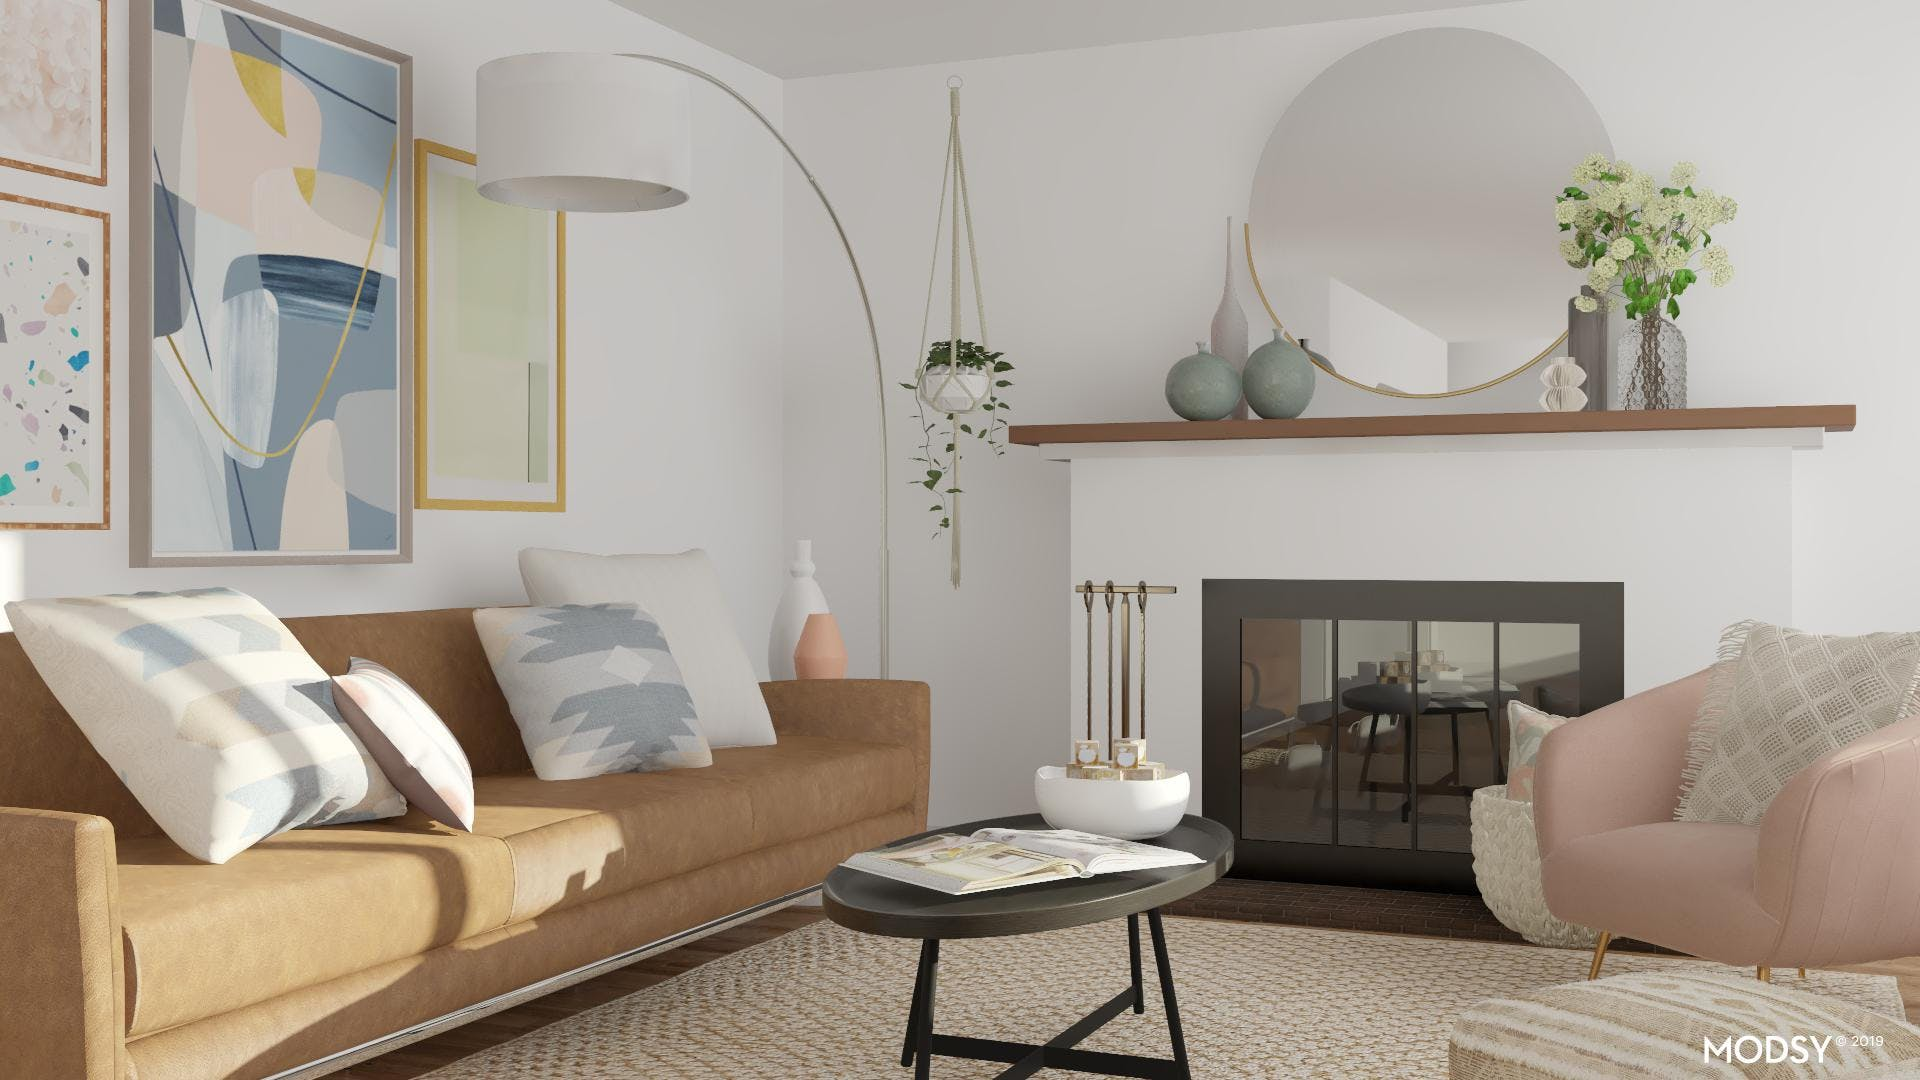 Pastel Accents in Mod Living Room